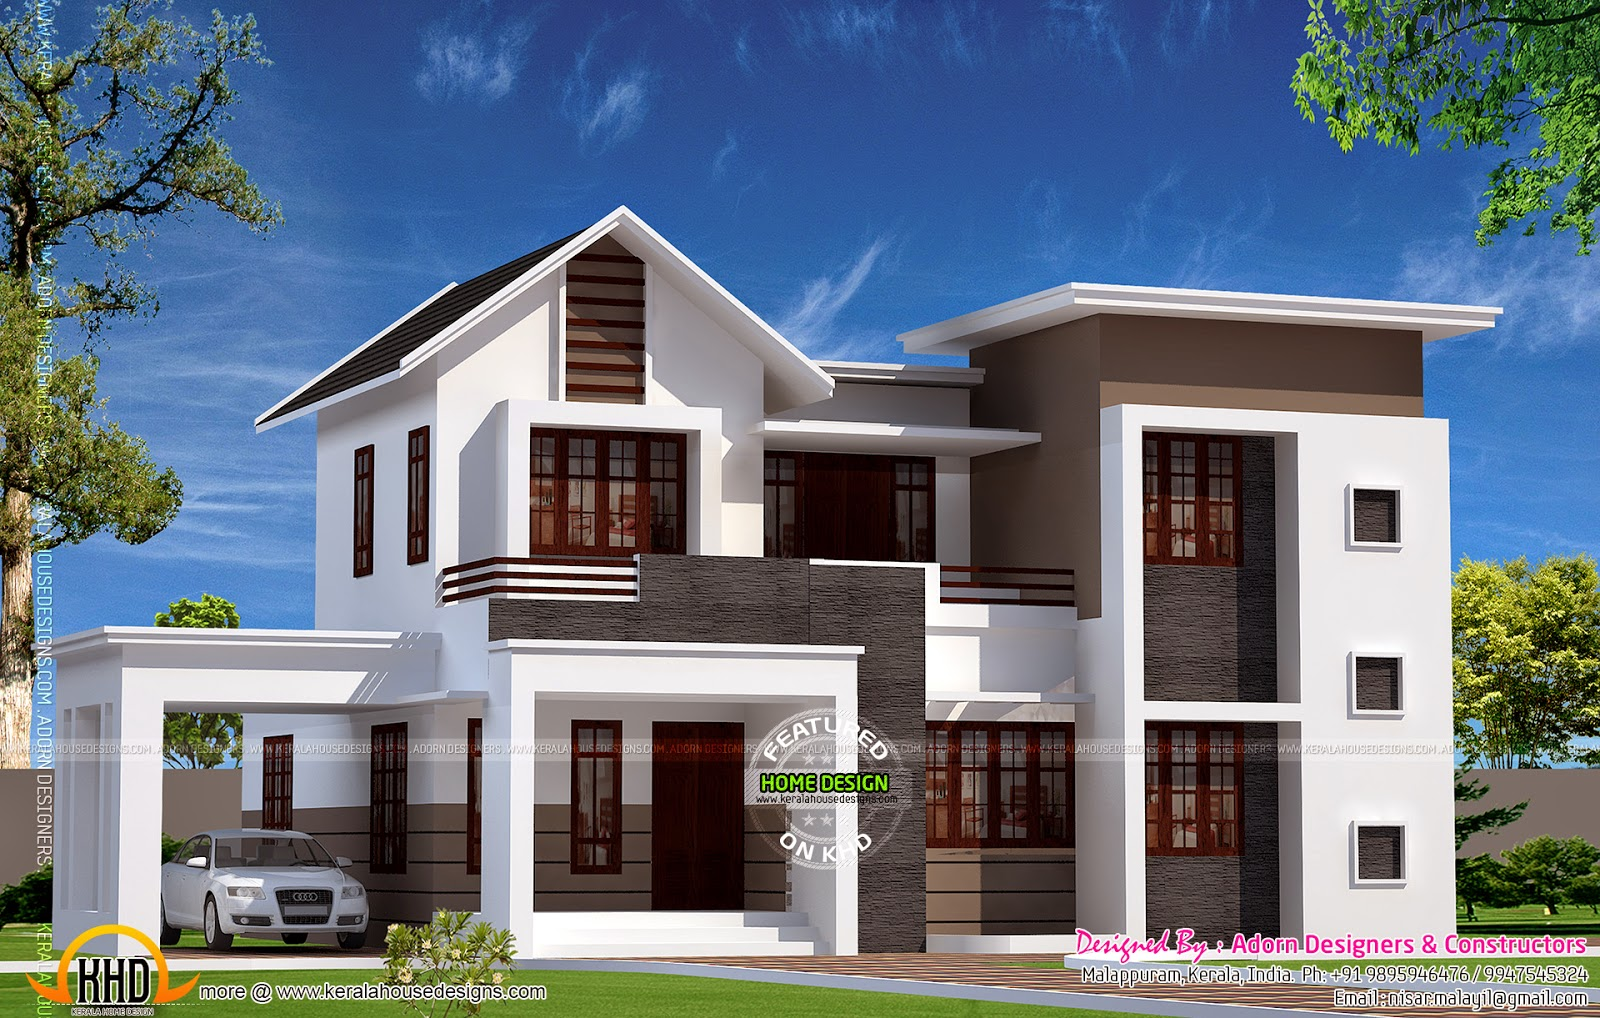 New house design in 1900 sq feet kerala home design and floor plans Exterior home design ideas 2015